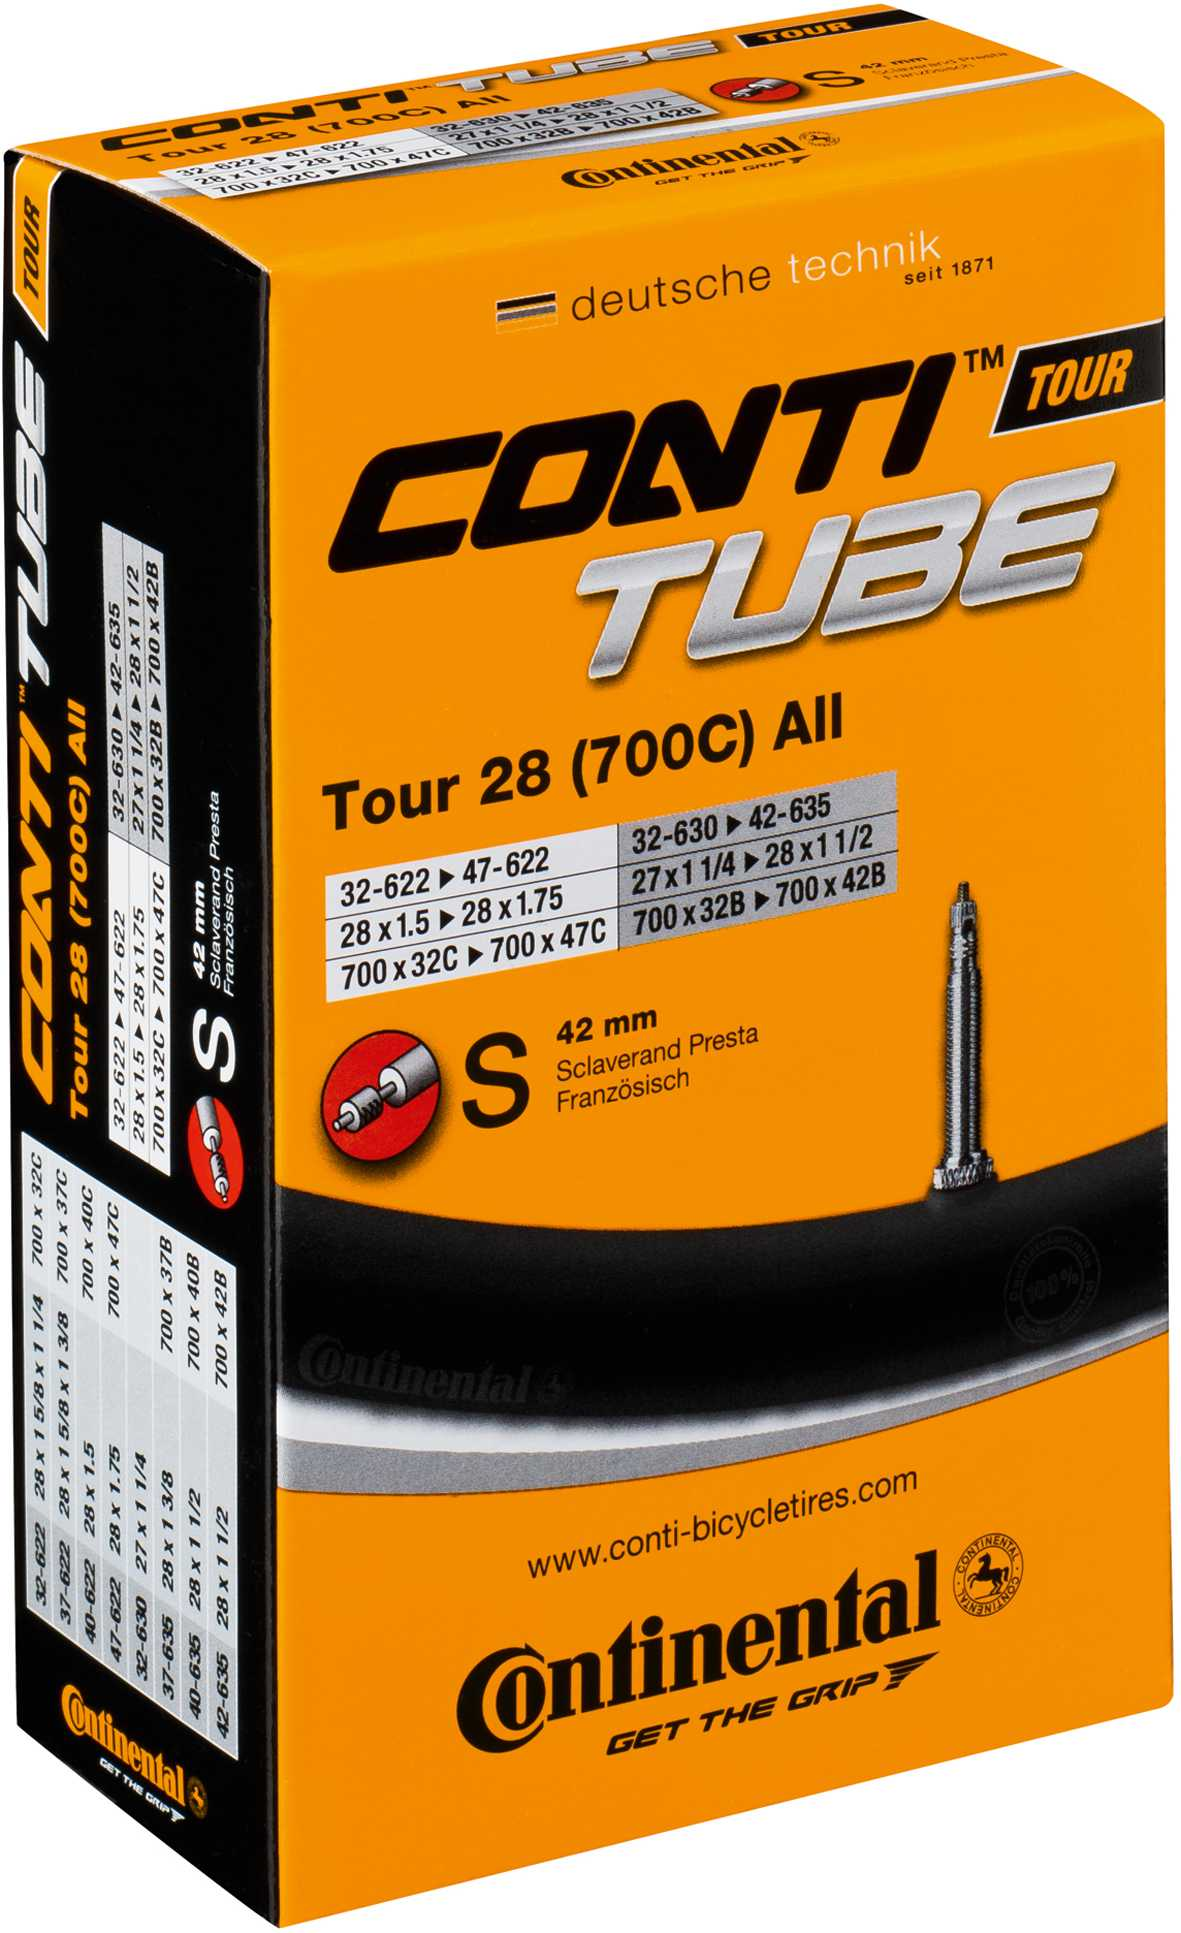 Continental Tour Tube - Schrader 26 x 1.3-1.75